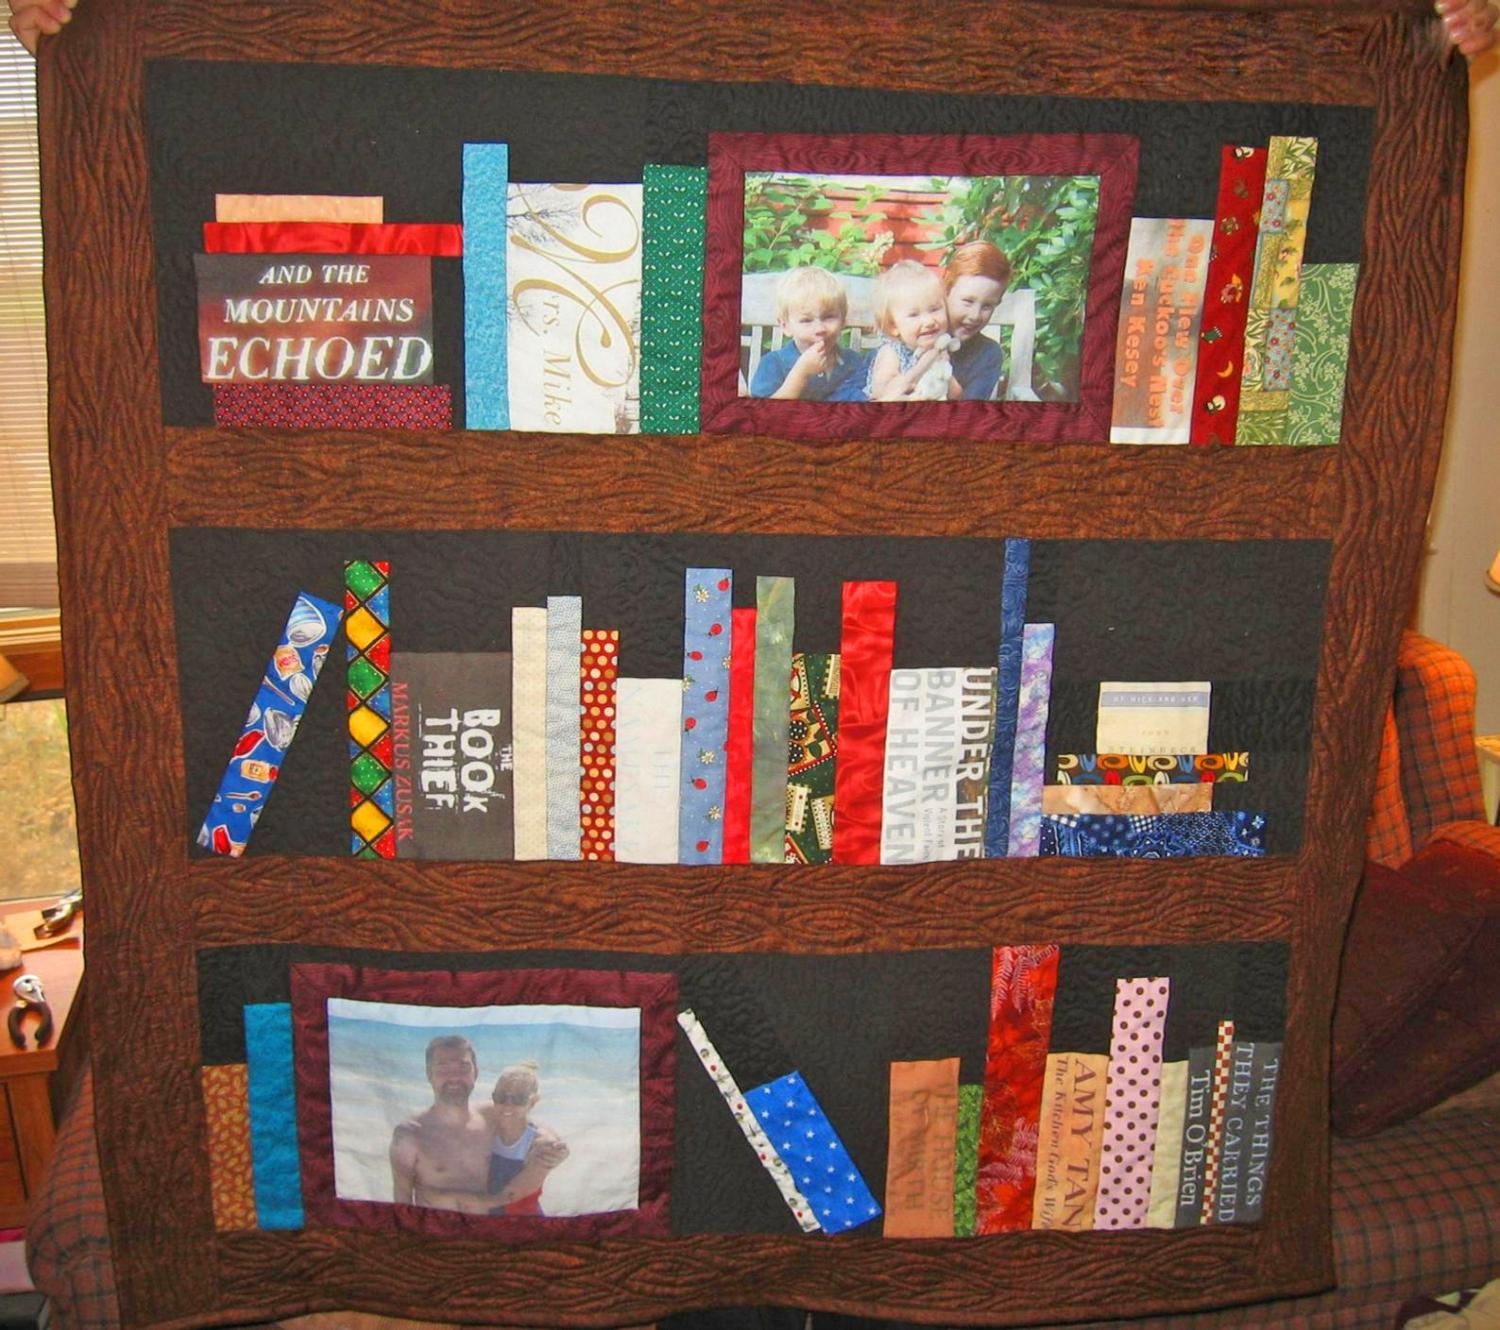 Custom Bookcase Quilt Customized With Your Favorite Books, Hobbies, and Family Photos